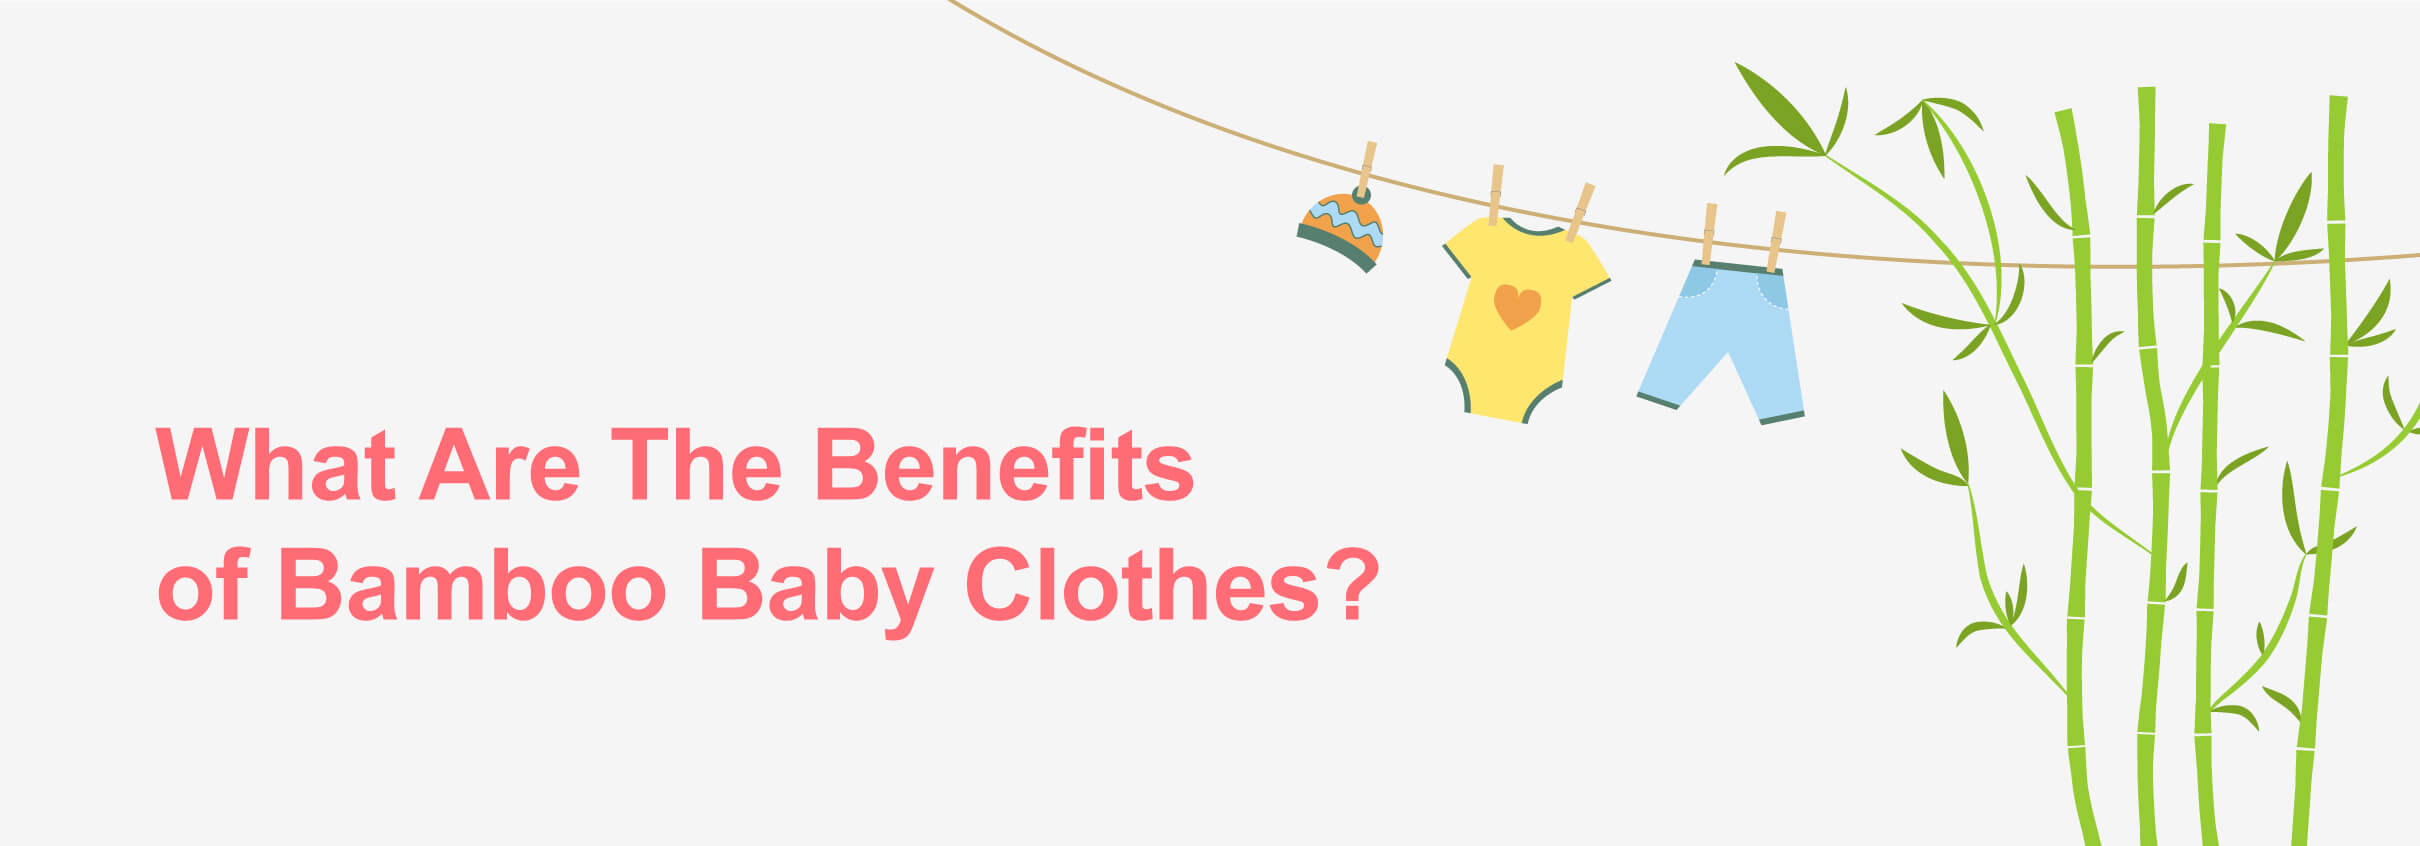 What Are The Benefits of Bamboo Baby Clothes Baby Riddle